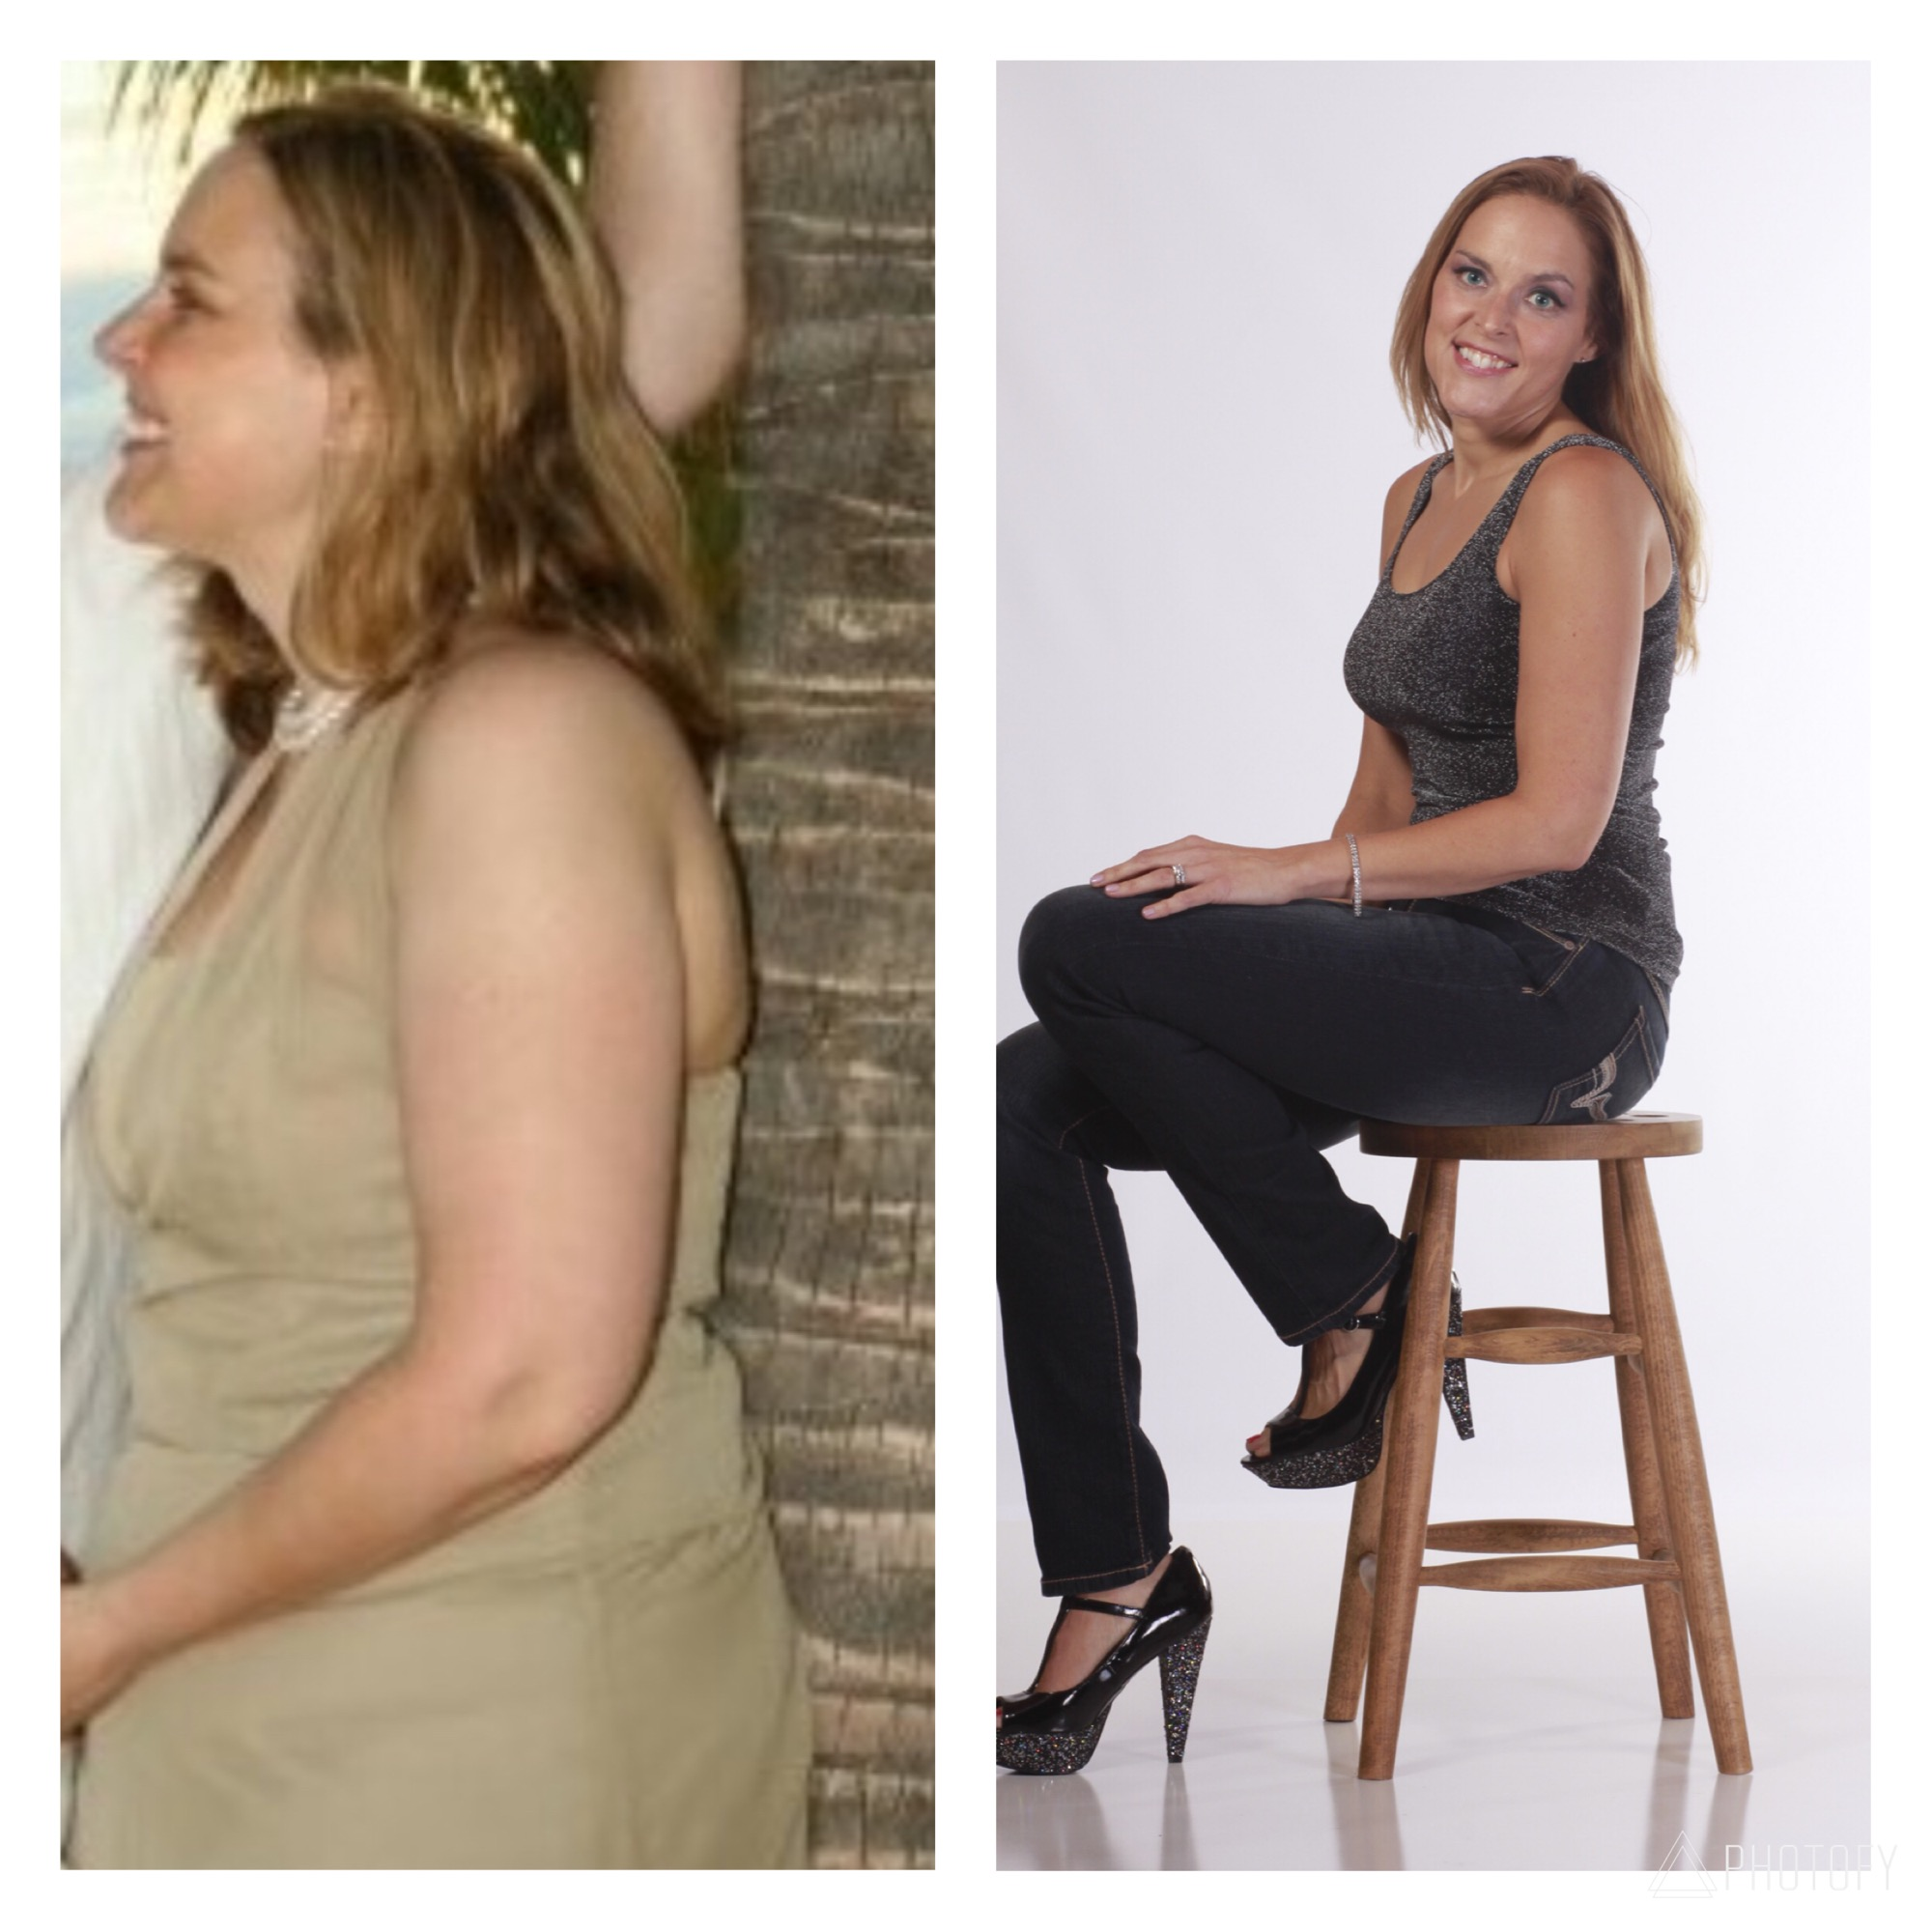 Great success story! Read before and after fitness transformation stories from women and men who hit weight loss goals and got THAT BODY with training and meal prep. Find inspiration, motivation, and workout tips   85 Pounds Lost: Wendys weigh